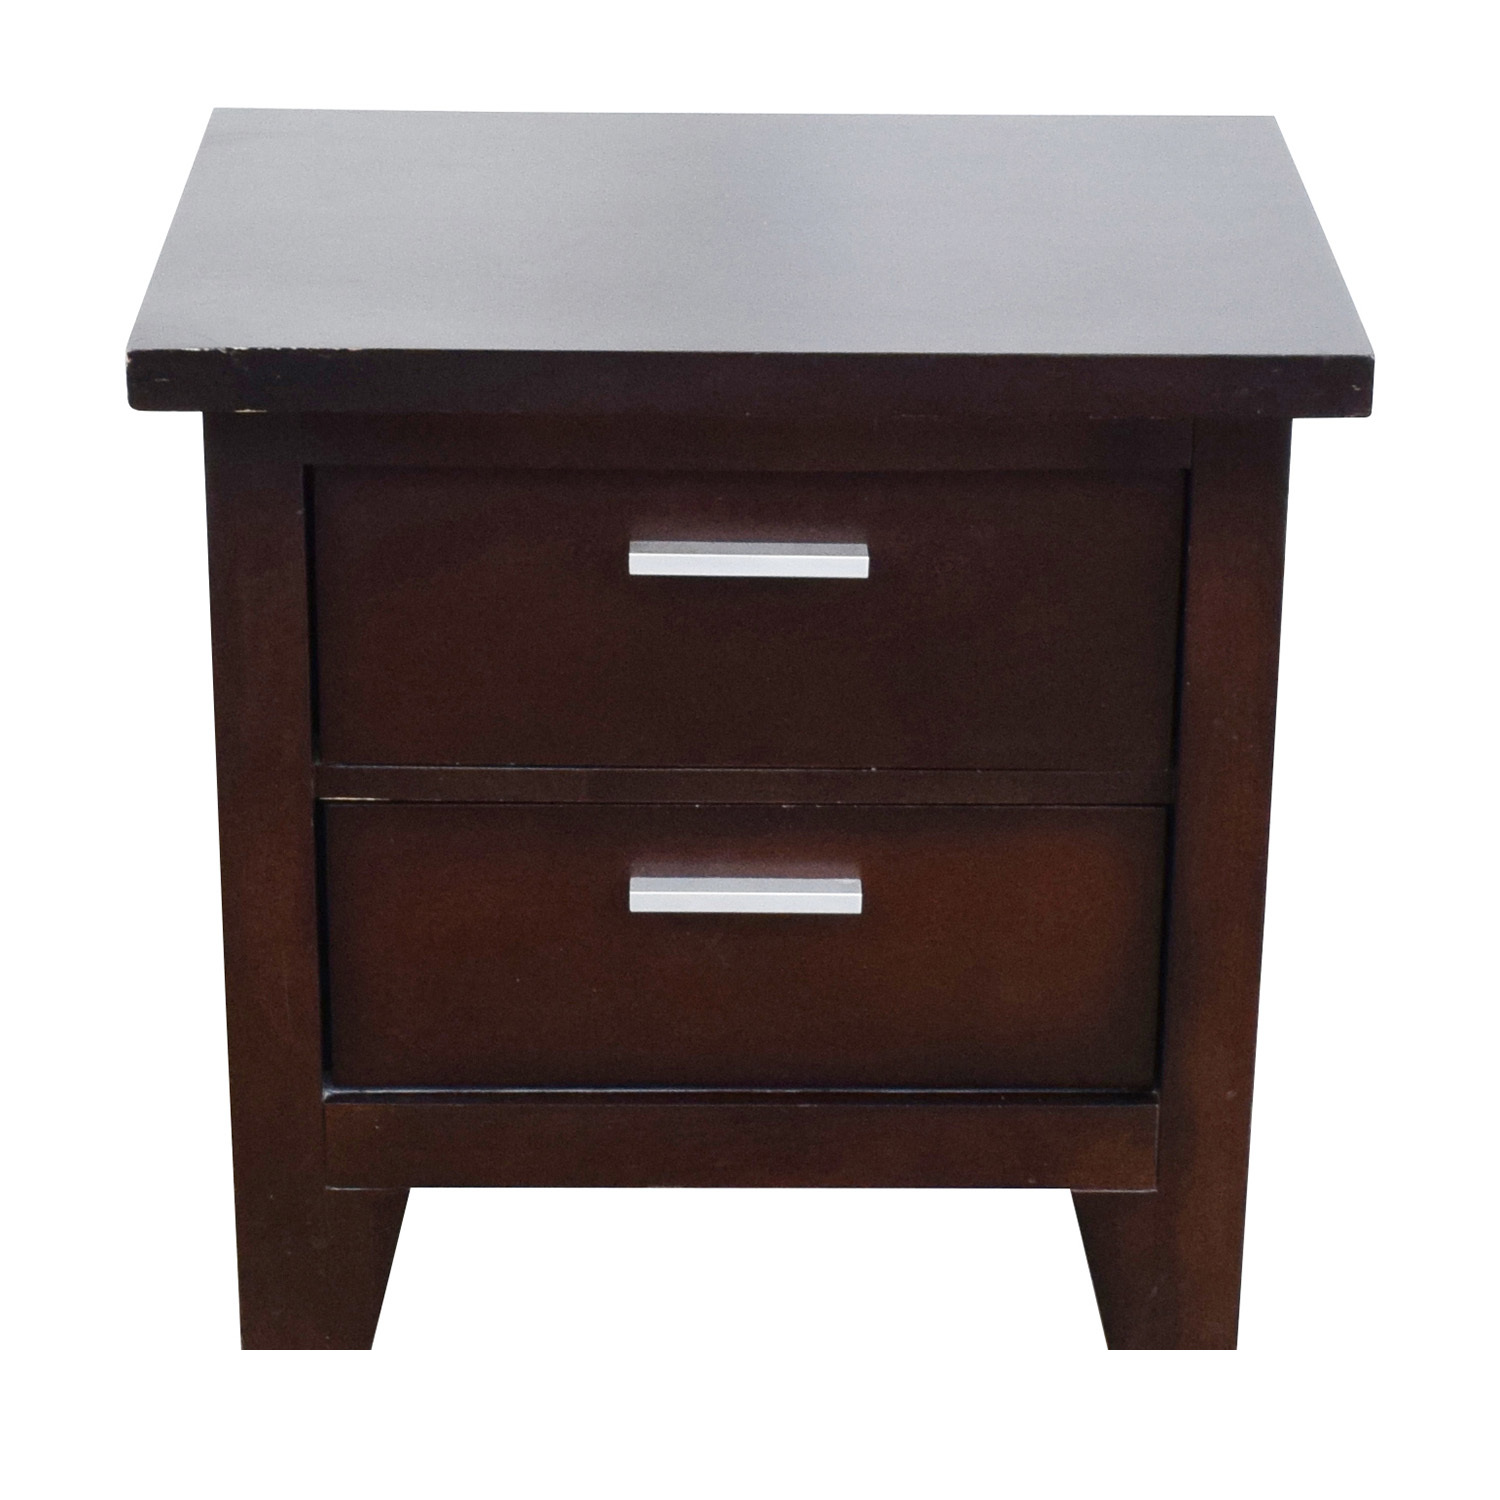 85 Off Ashley Furniture Ashley Furniture Two Drawer Nightstand Tables